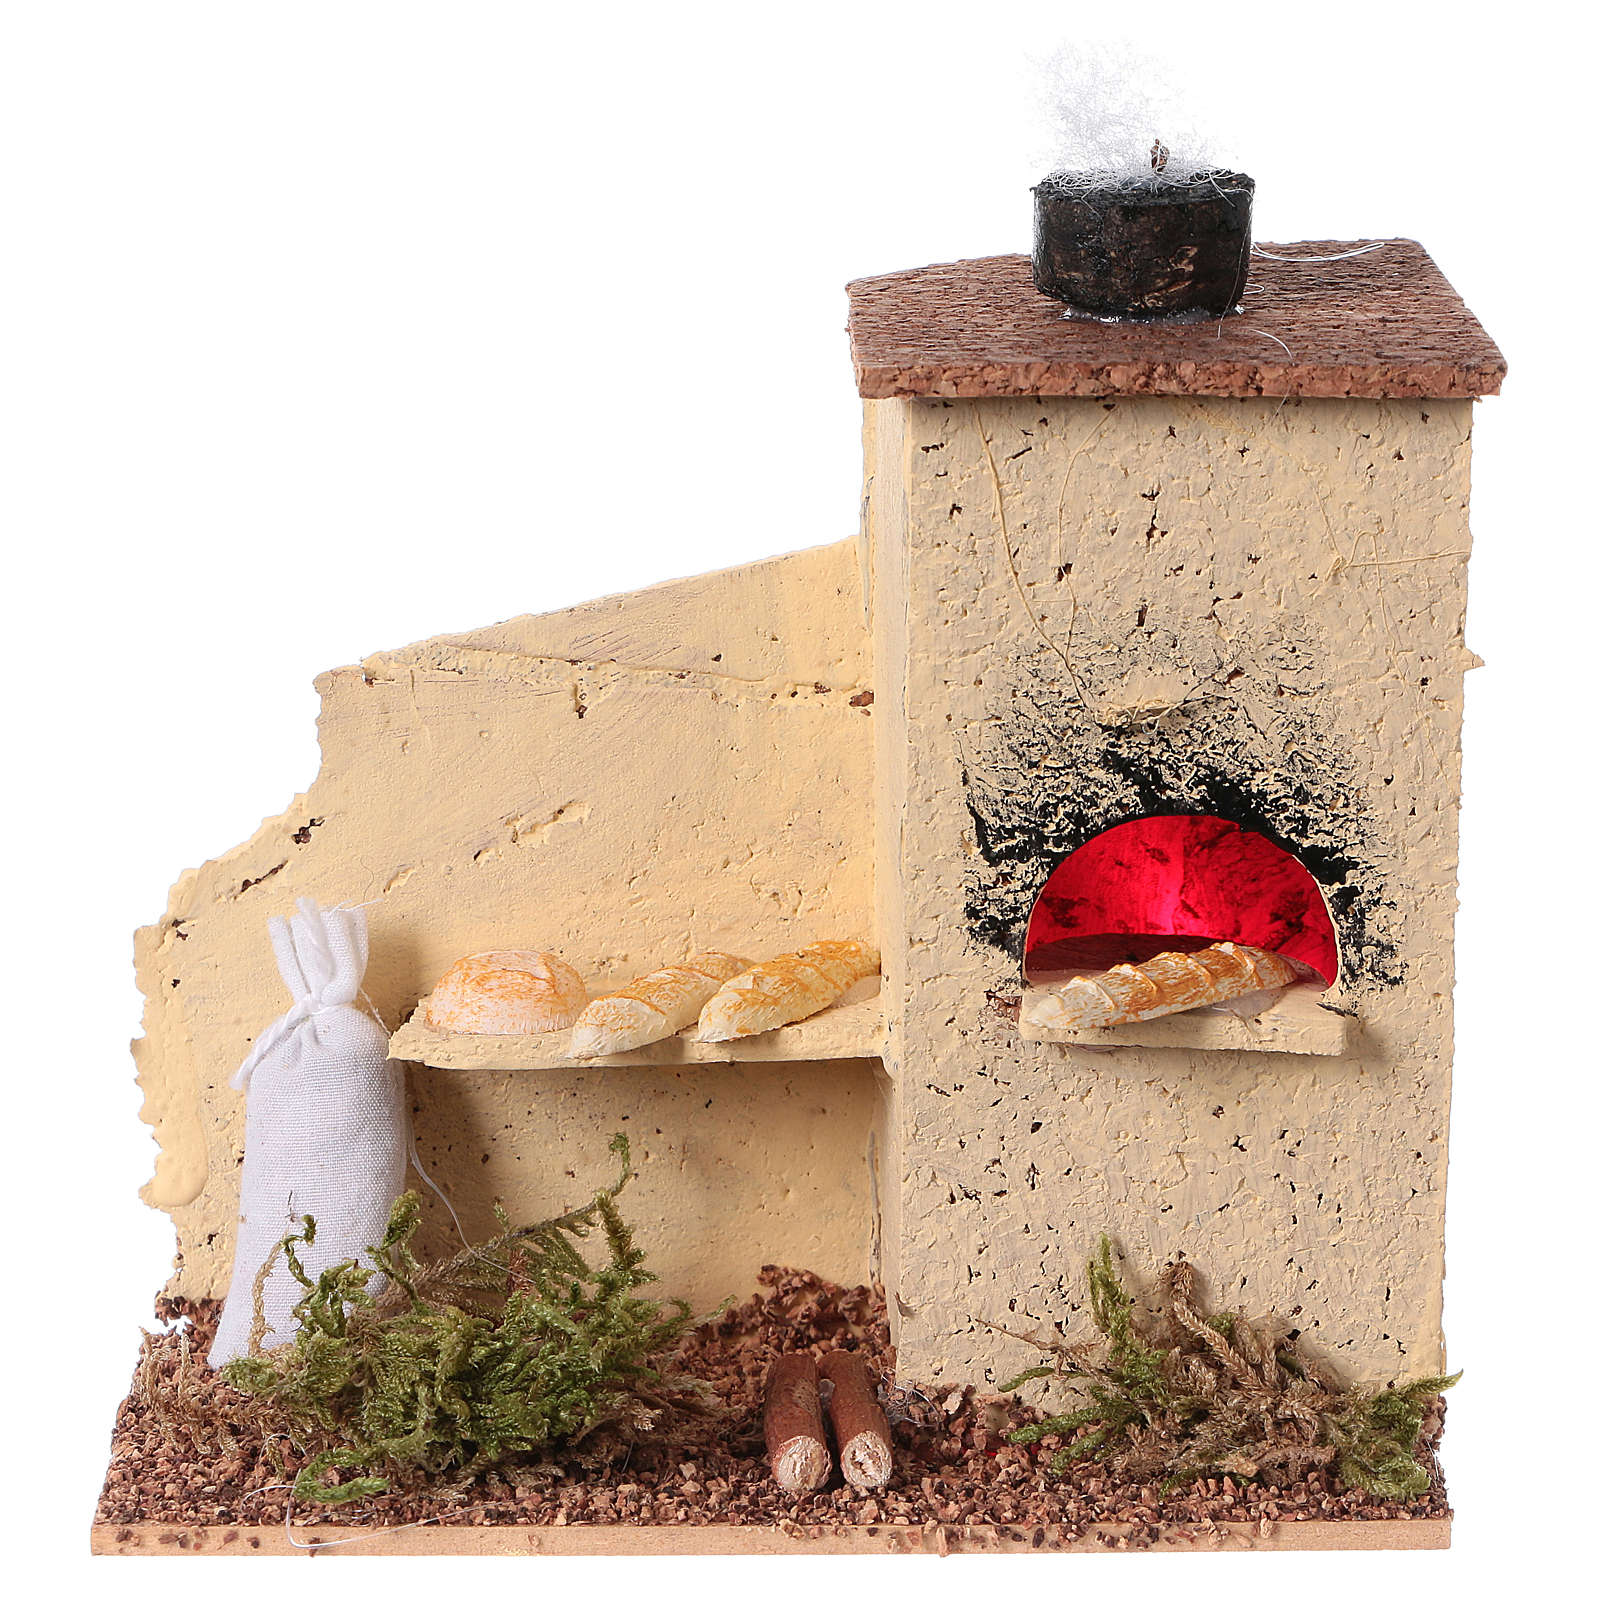 Cork oven with flame effect 10x10x5 cm 4